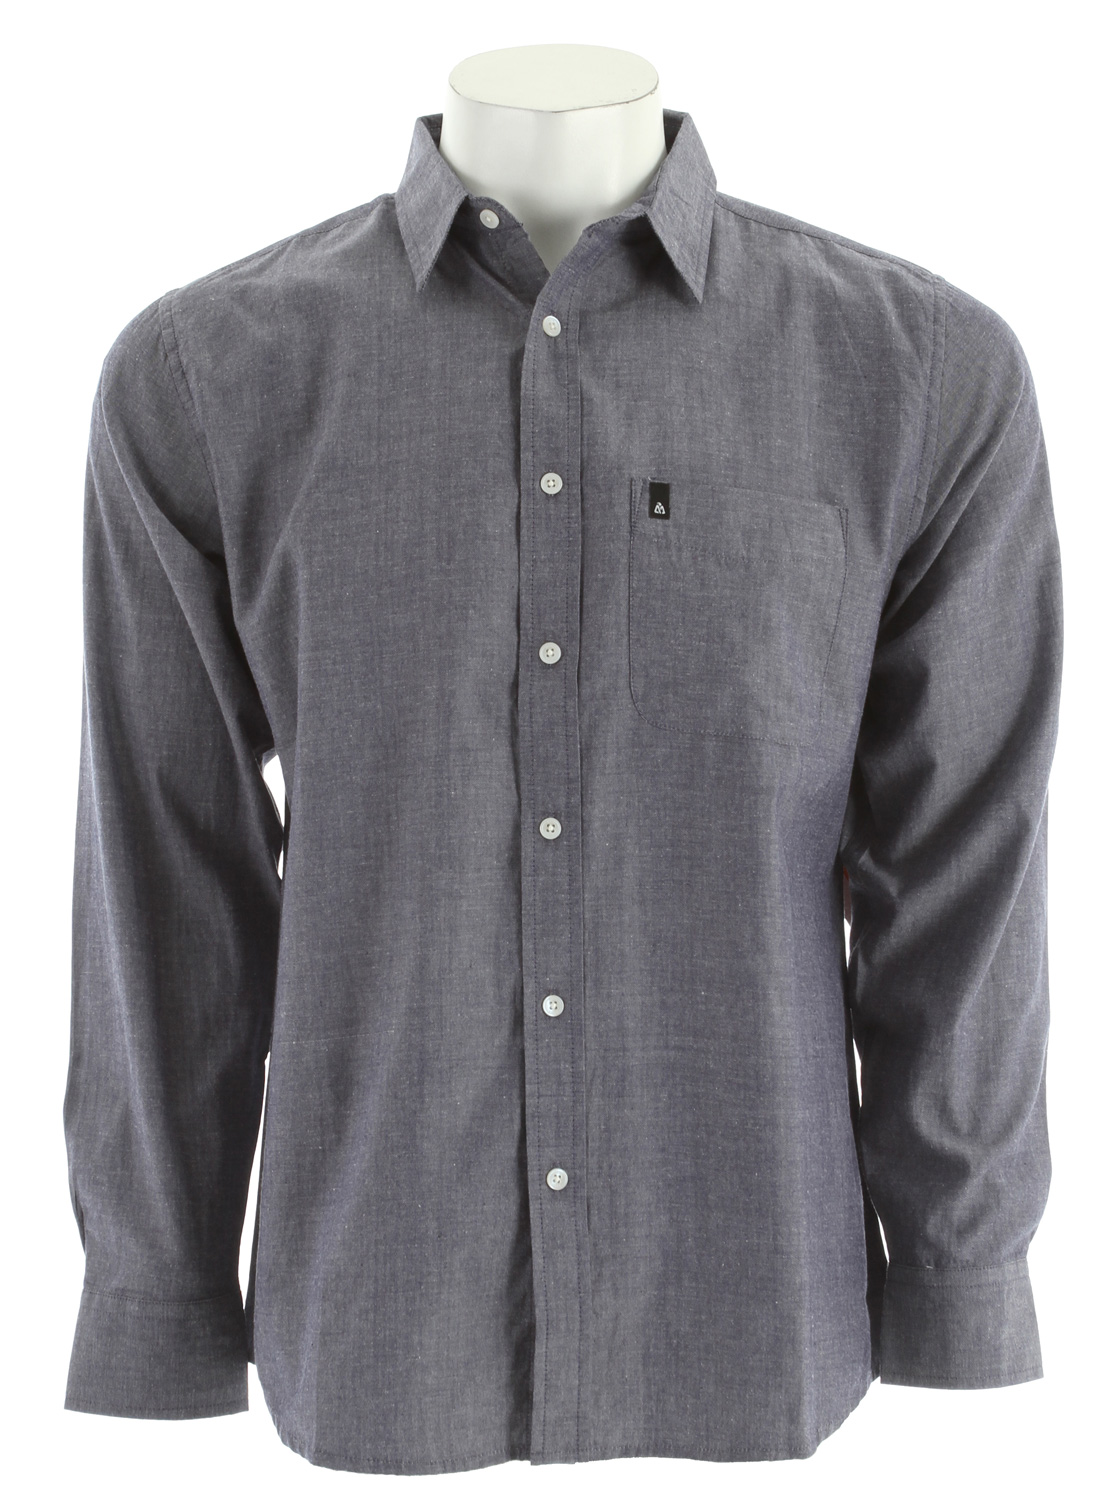 Key Features of the Matix Professor X Shirt: 100% cotton Marc Johnson signature shirt with chest pocket Great solid style with Marc Johnson signature label Matix labeling Slim fit - $49.95